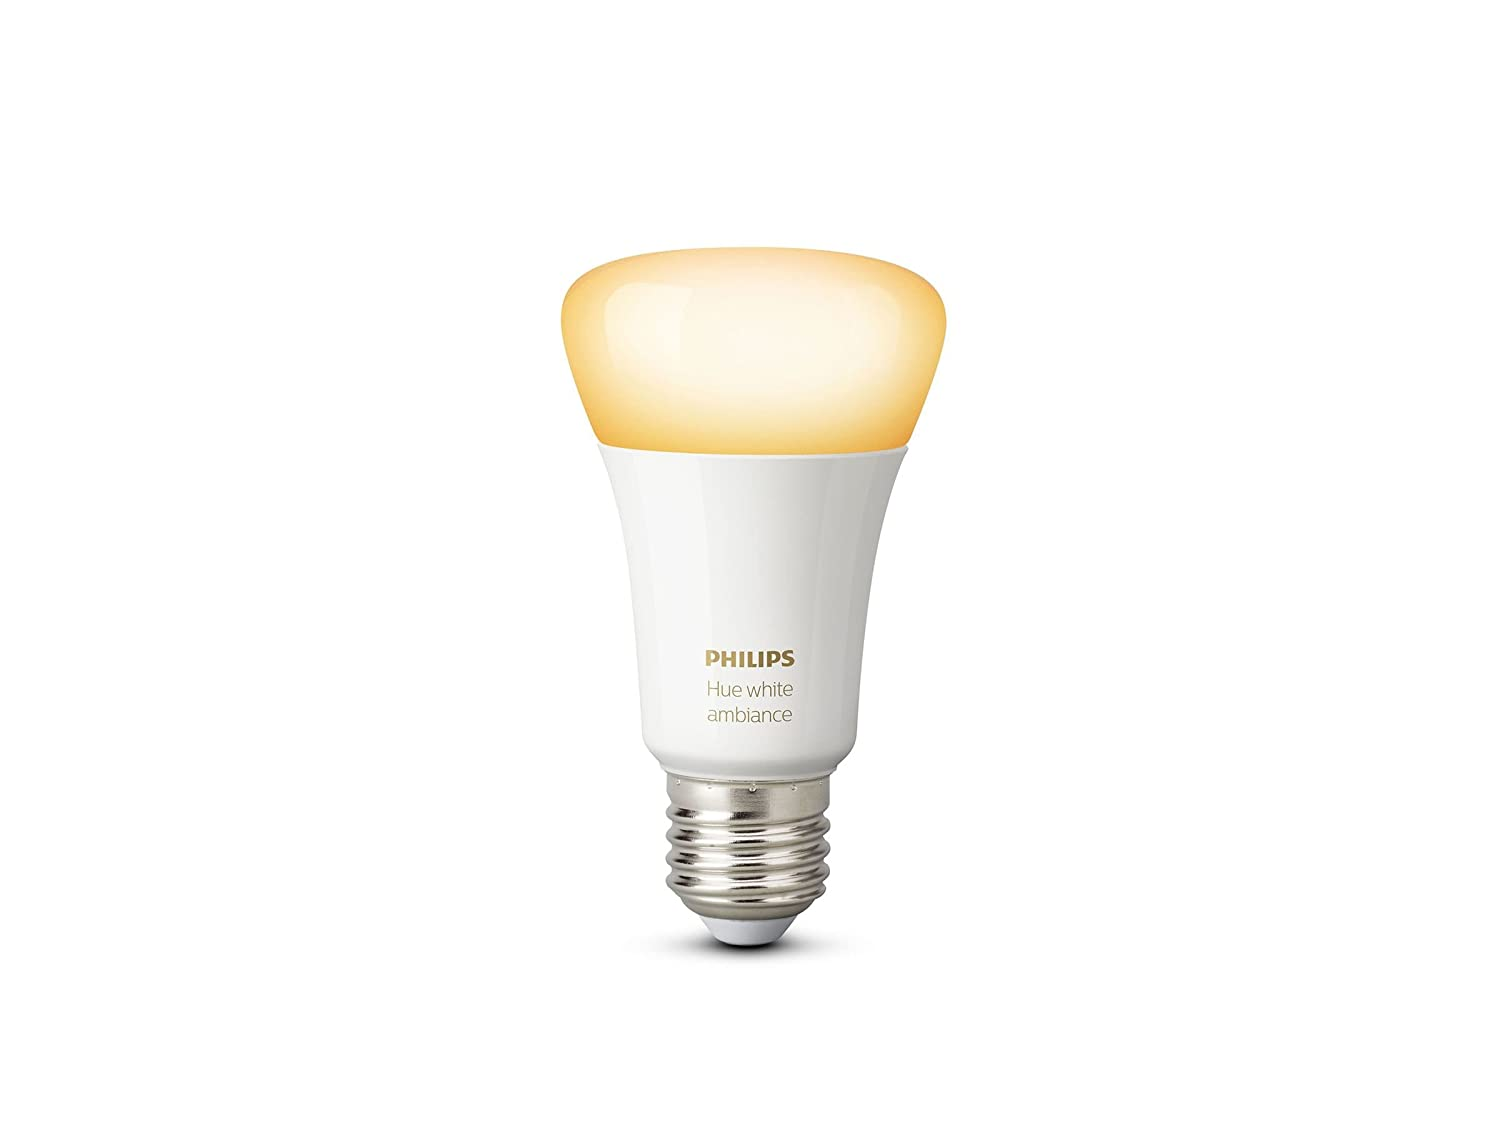 philips hue white ambiance a19 60w equivalent dimmable led smart